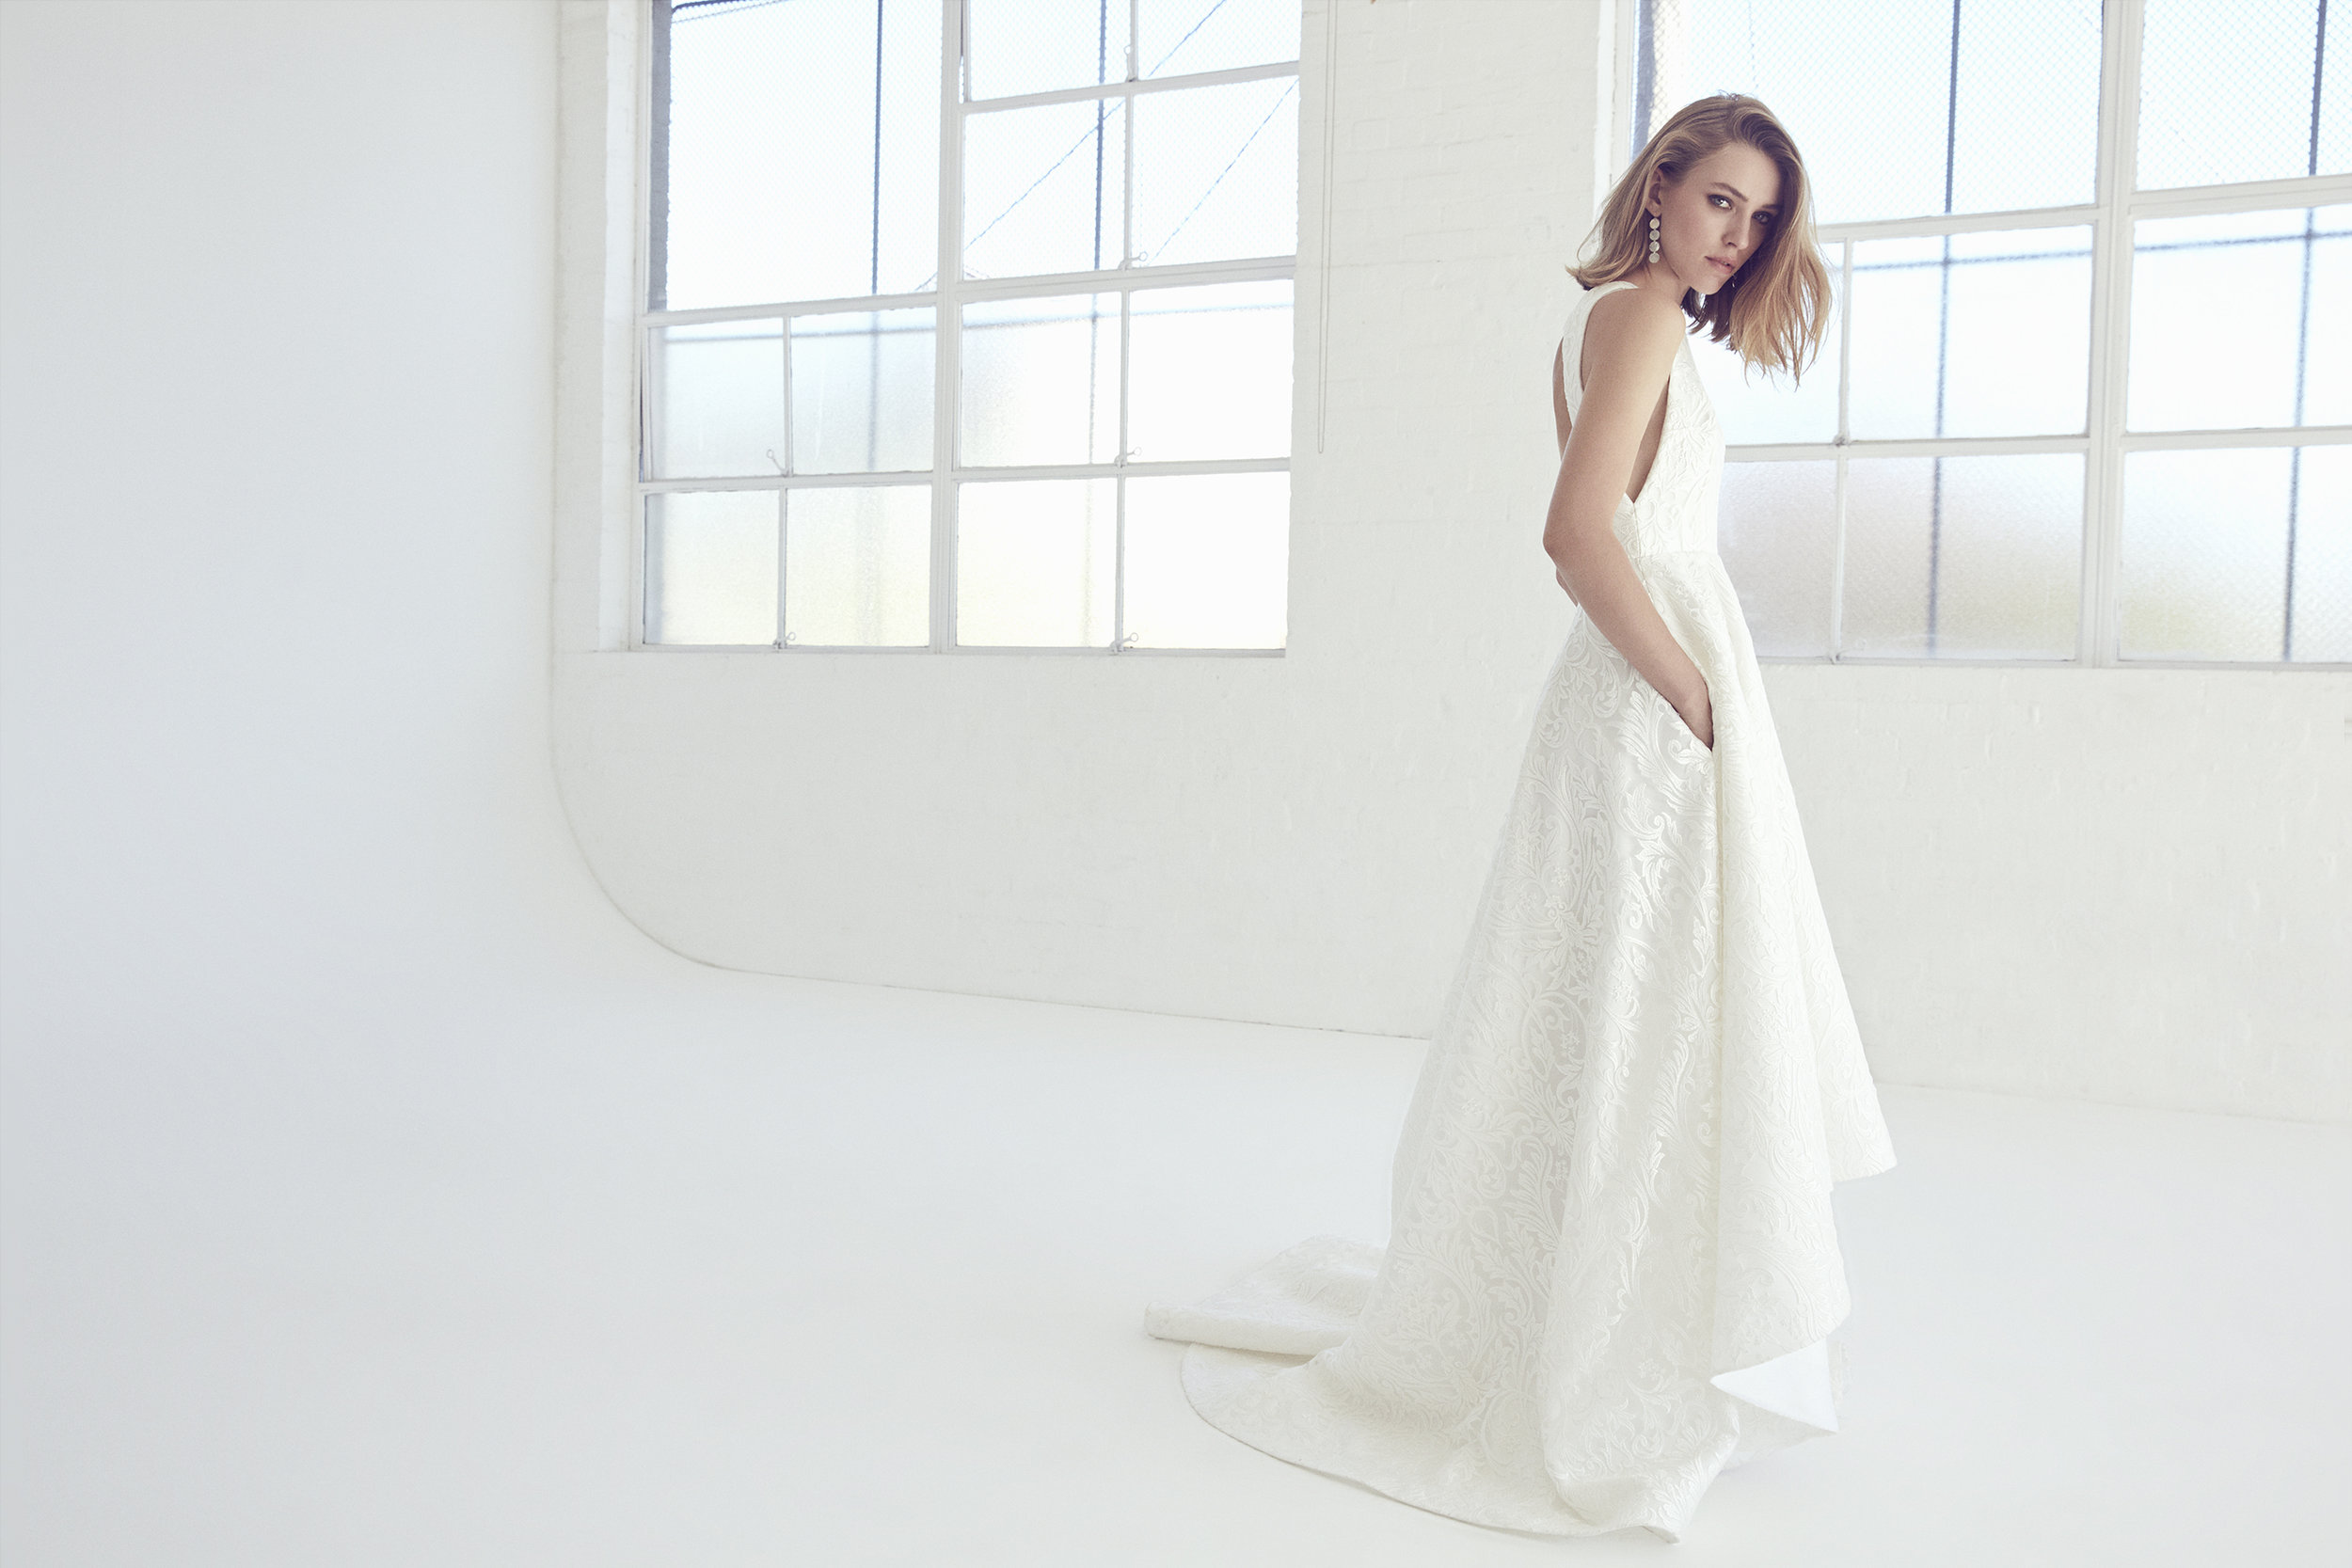 Neptune Gown by Suzanne Harward | As Featured on LOVE FIND CO.